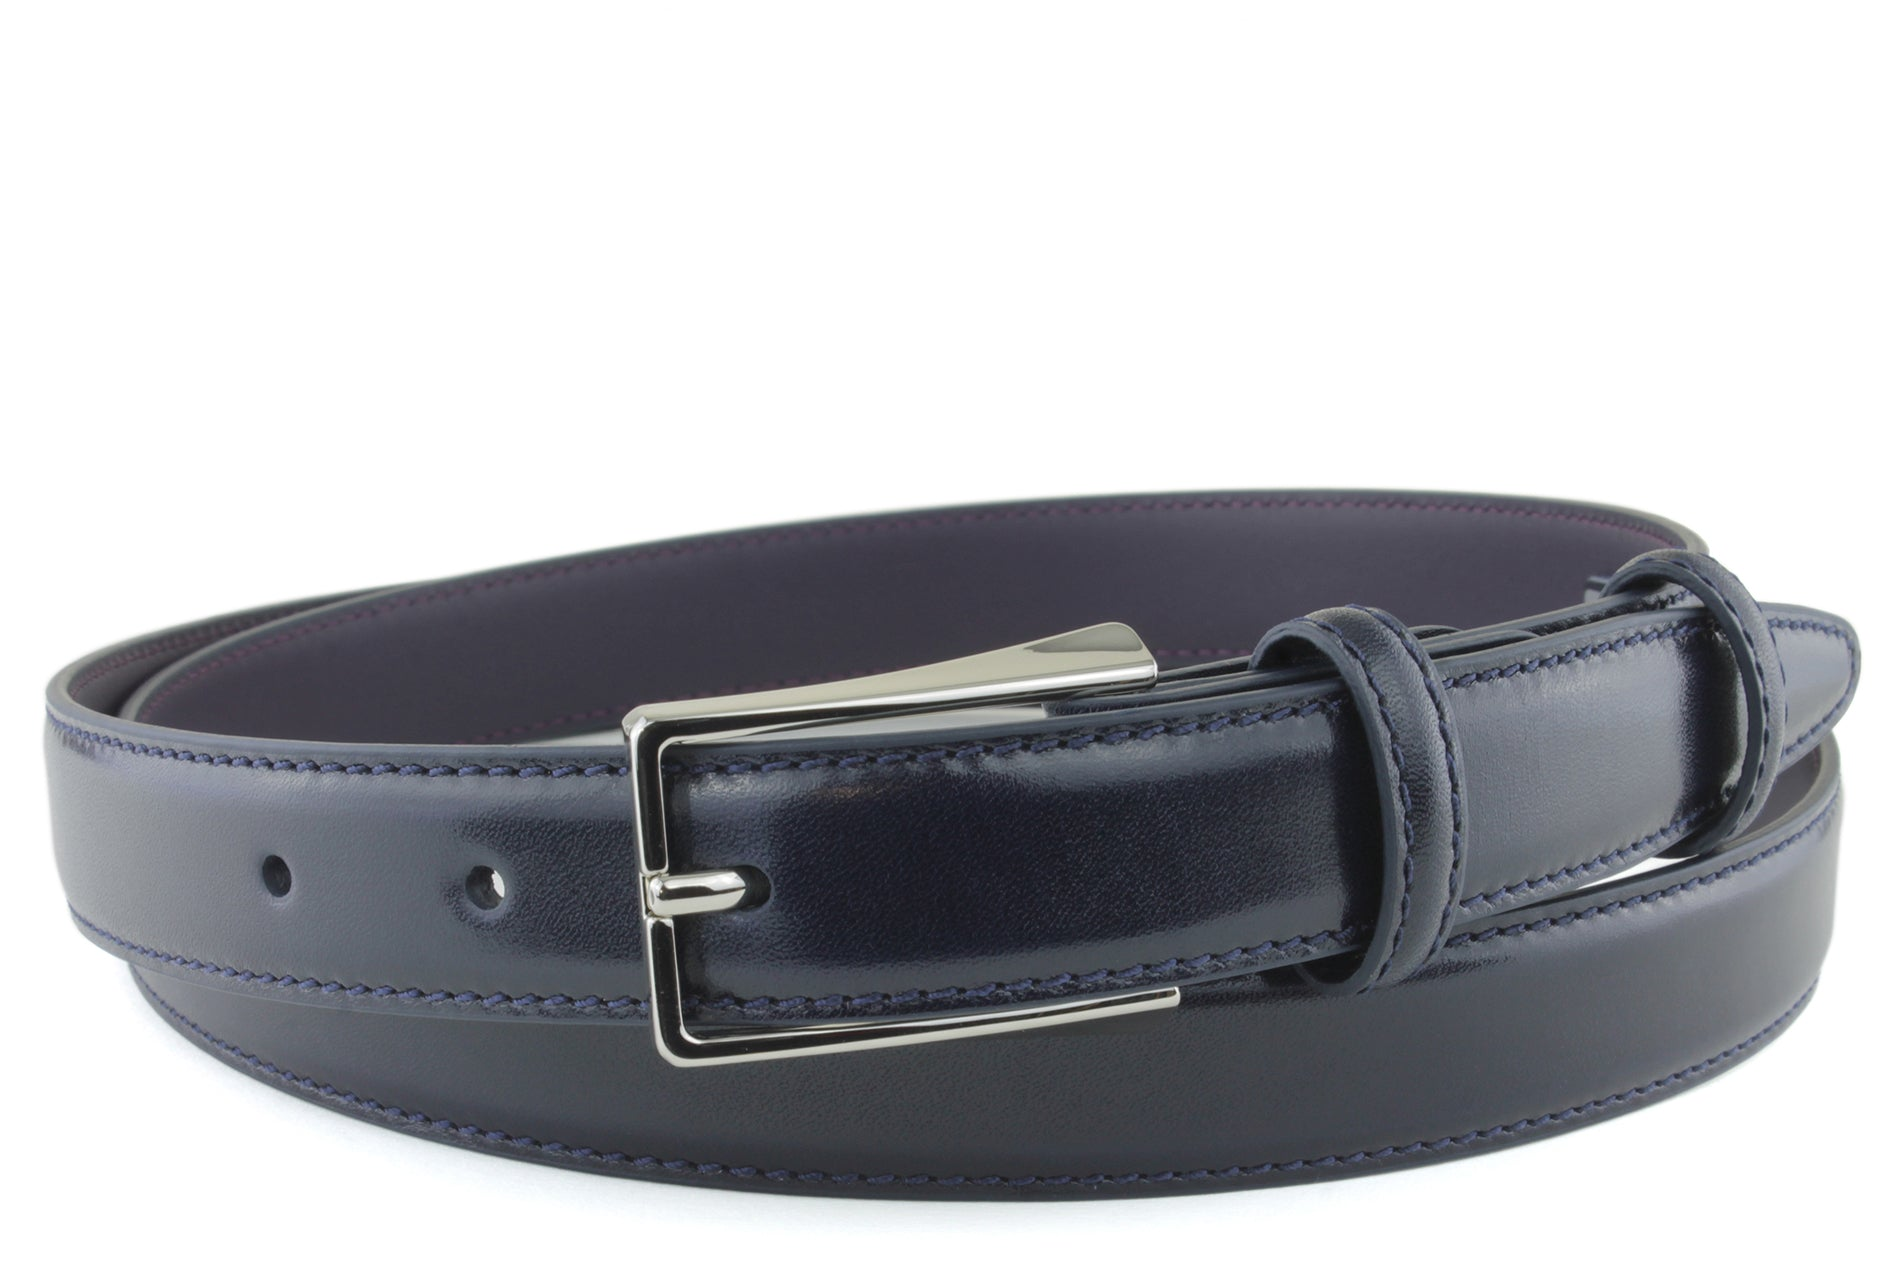 Women Skinny Leather Belt with Silver Polished Square Belt Buckle - Solid Color PU Leather Belts by Belle Donne by Belle Donne $ - $ $ 6 79 - $ 10 99 Prime.